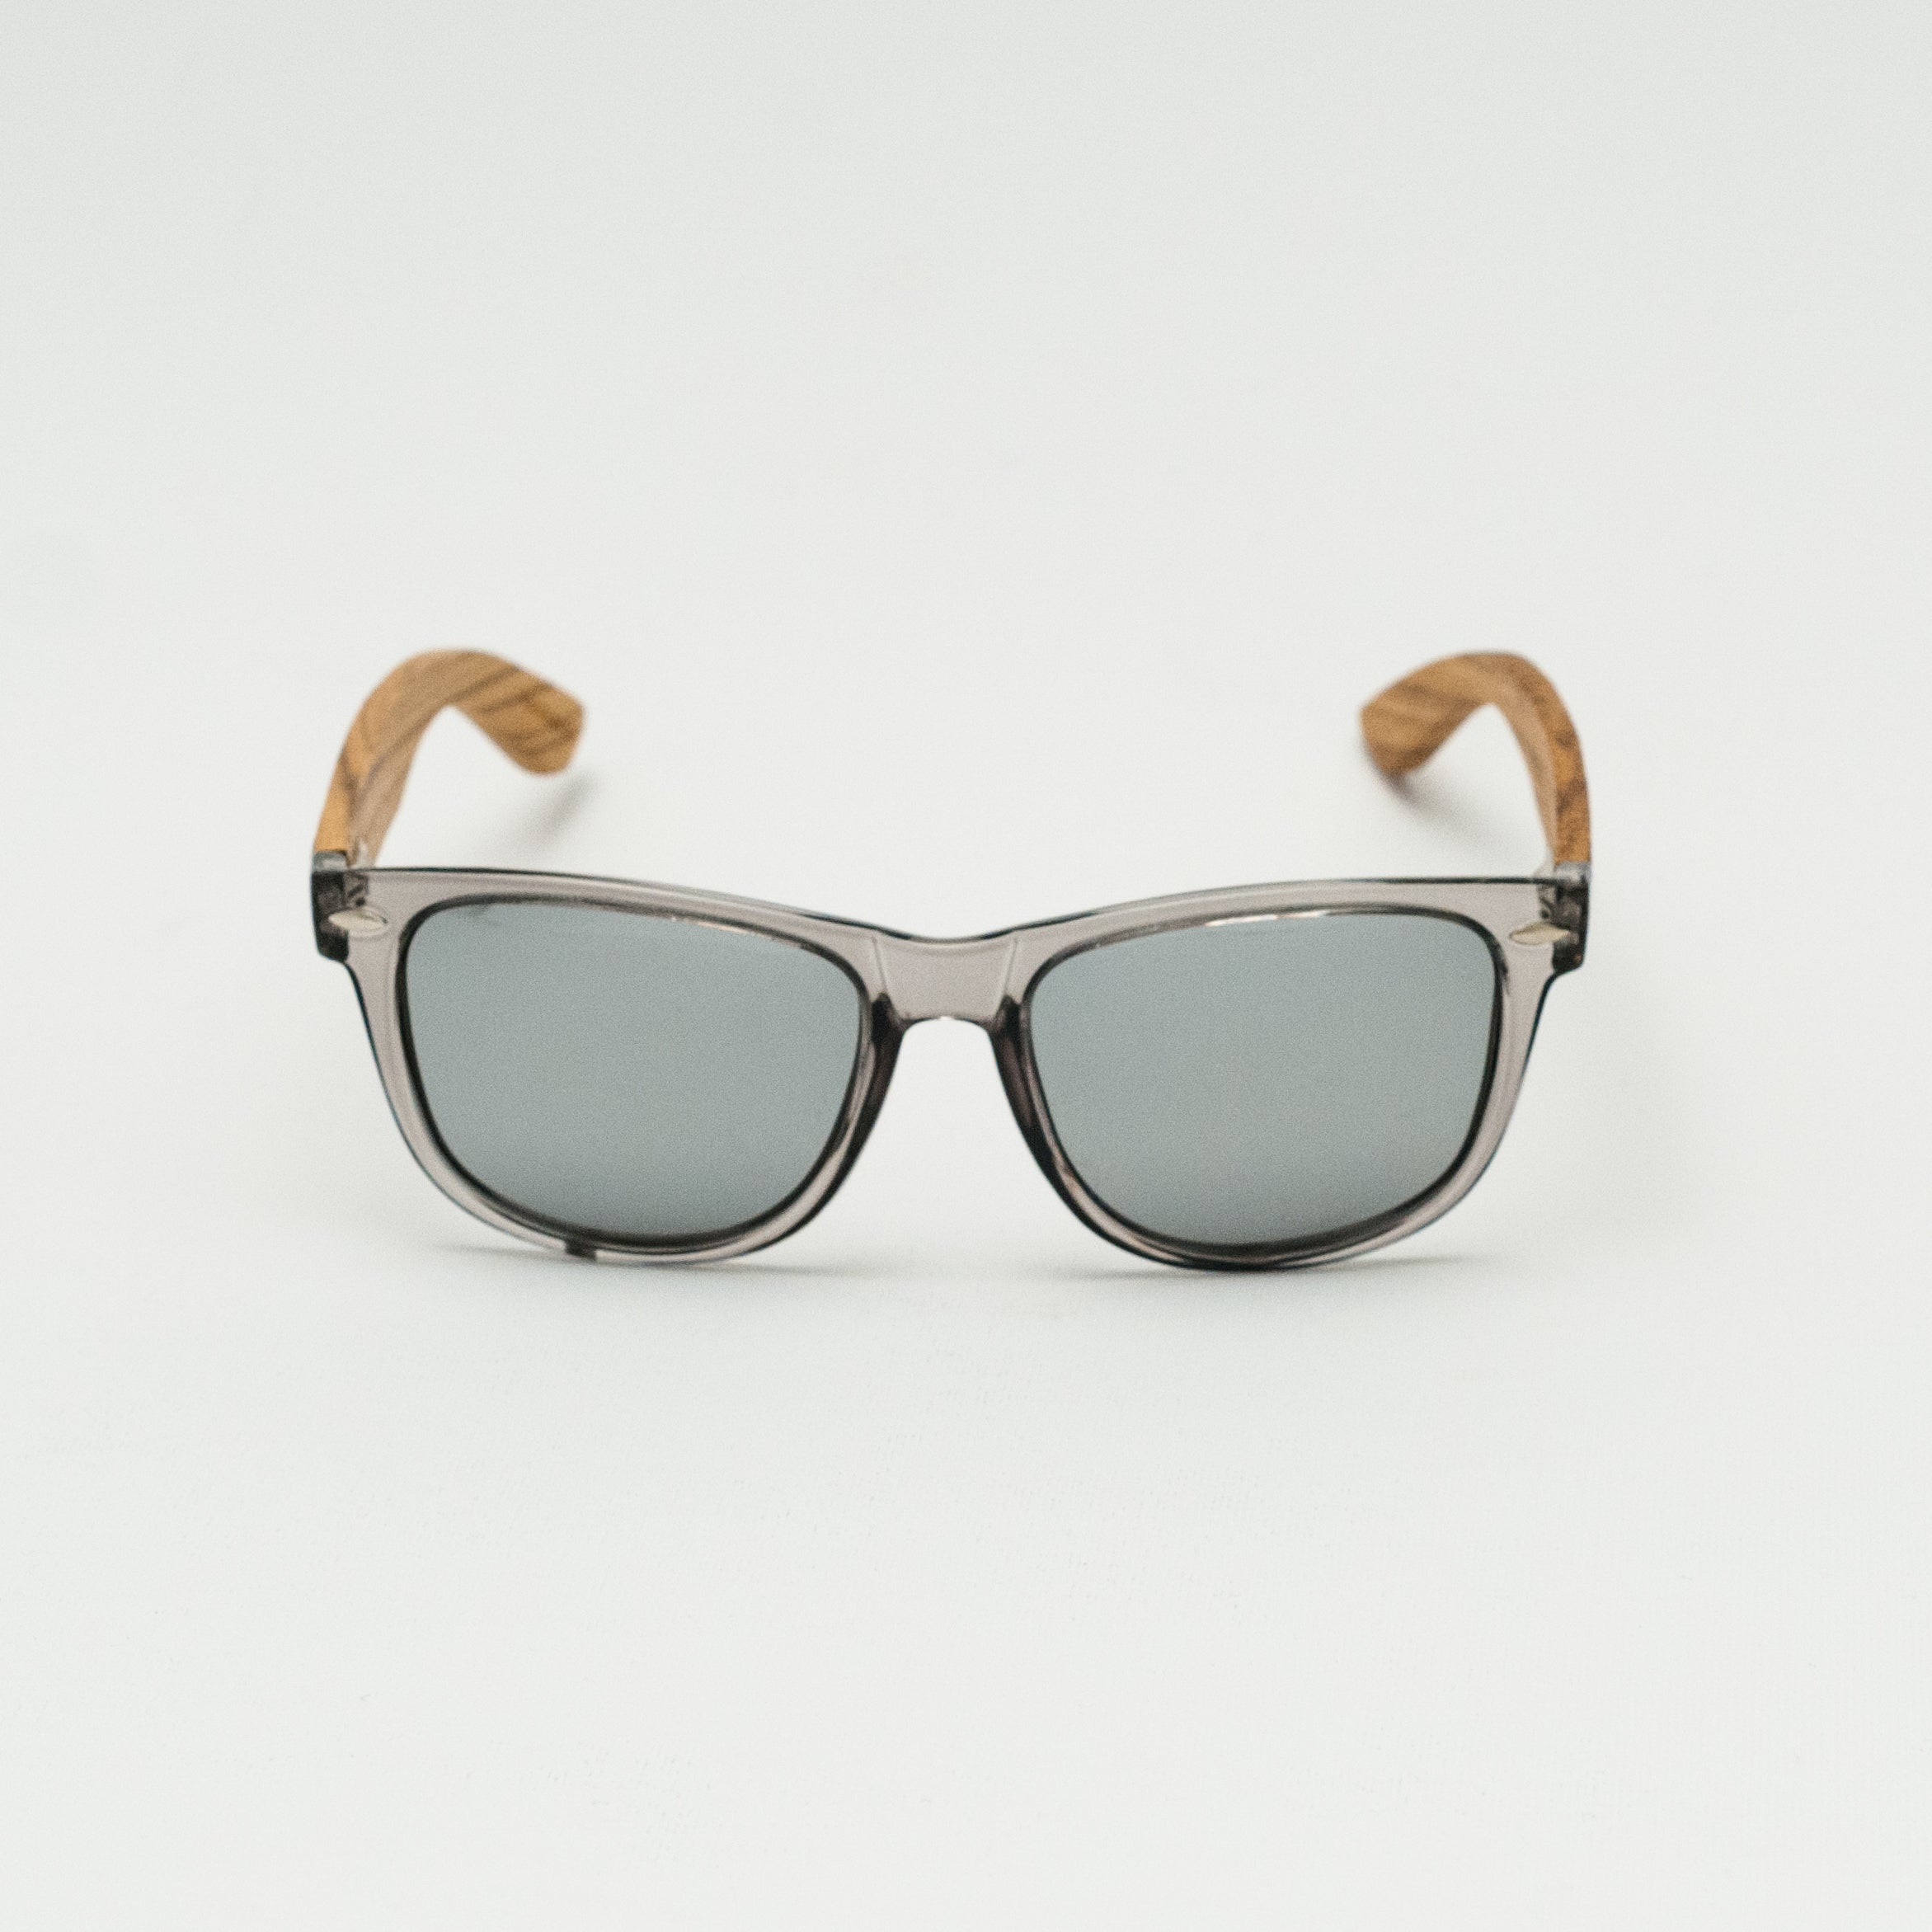 Zebra Wood Wayfarer Sunglasses(Grey with Silver REVO Lens)